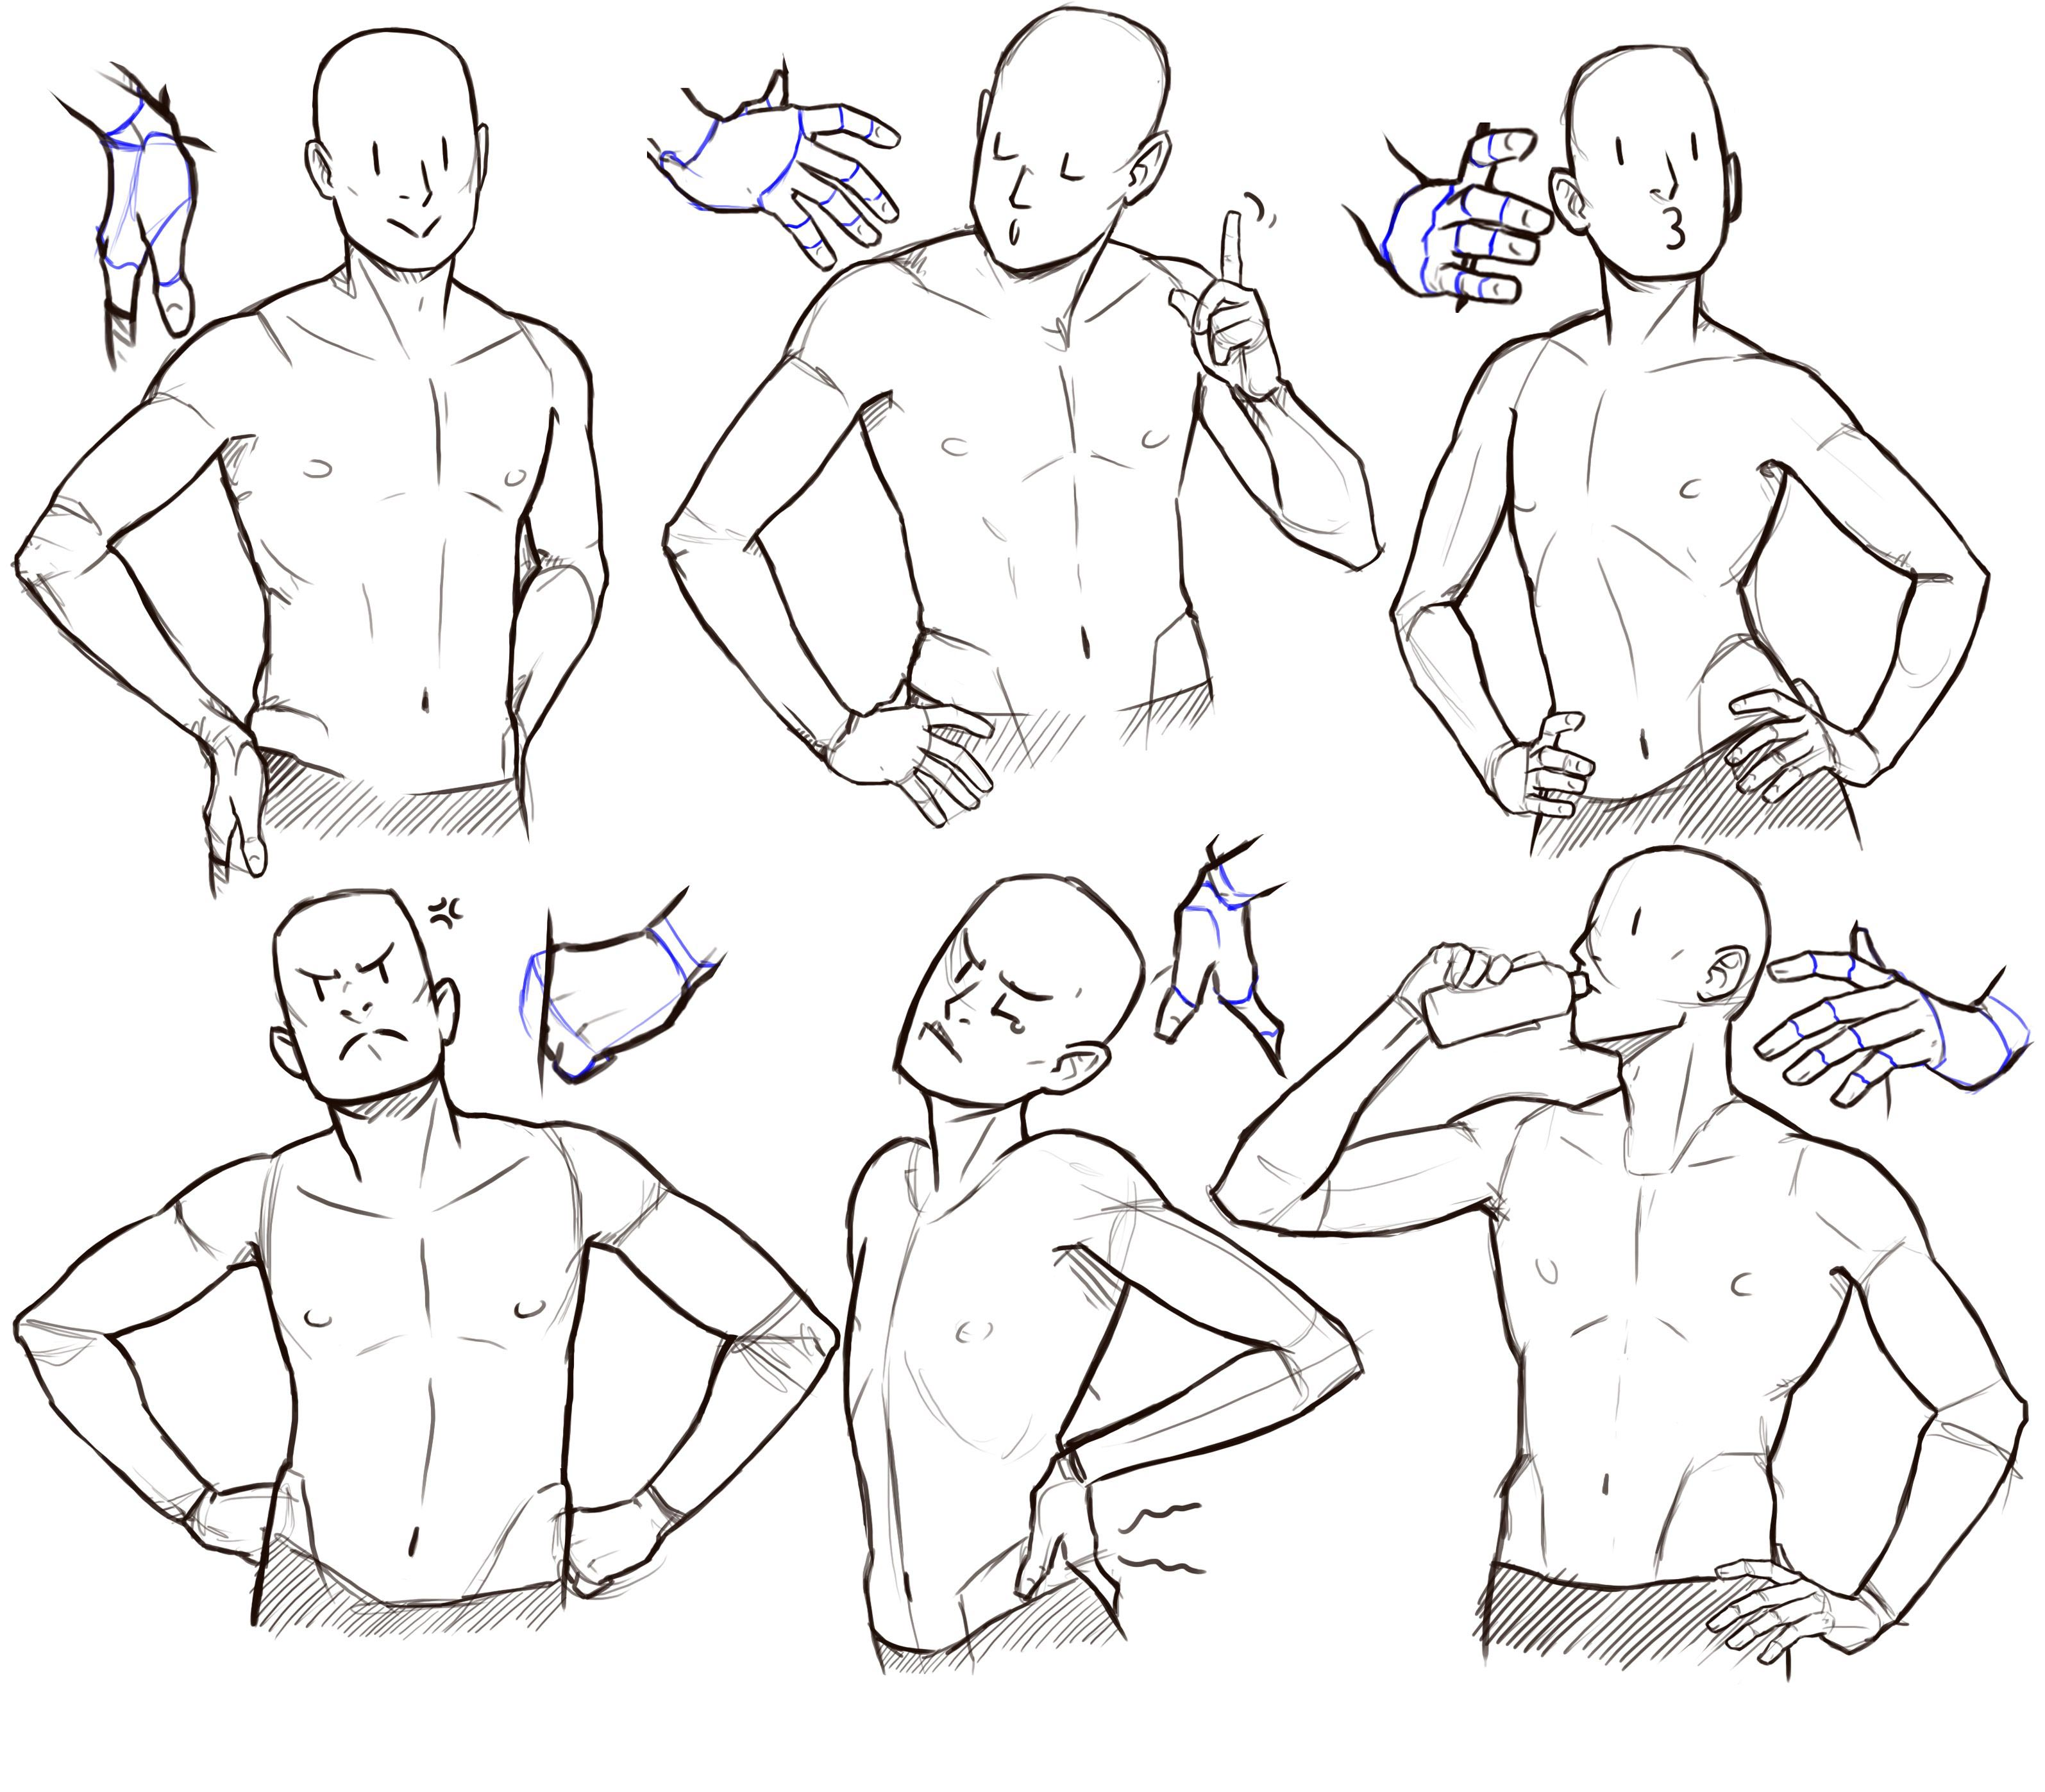 Hands on Hips drawing reference